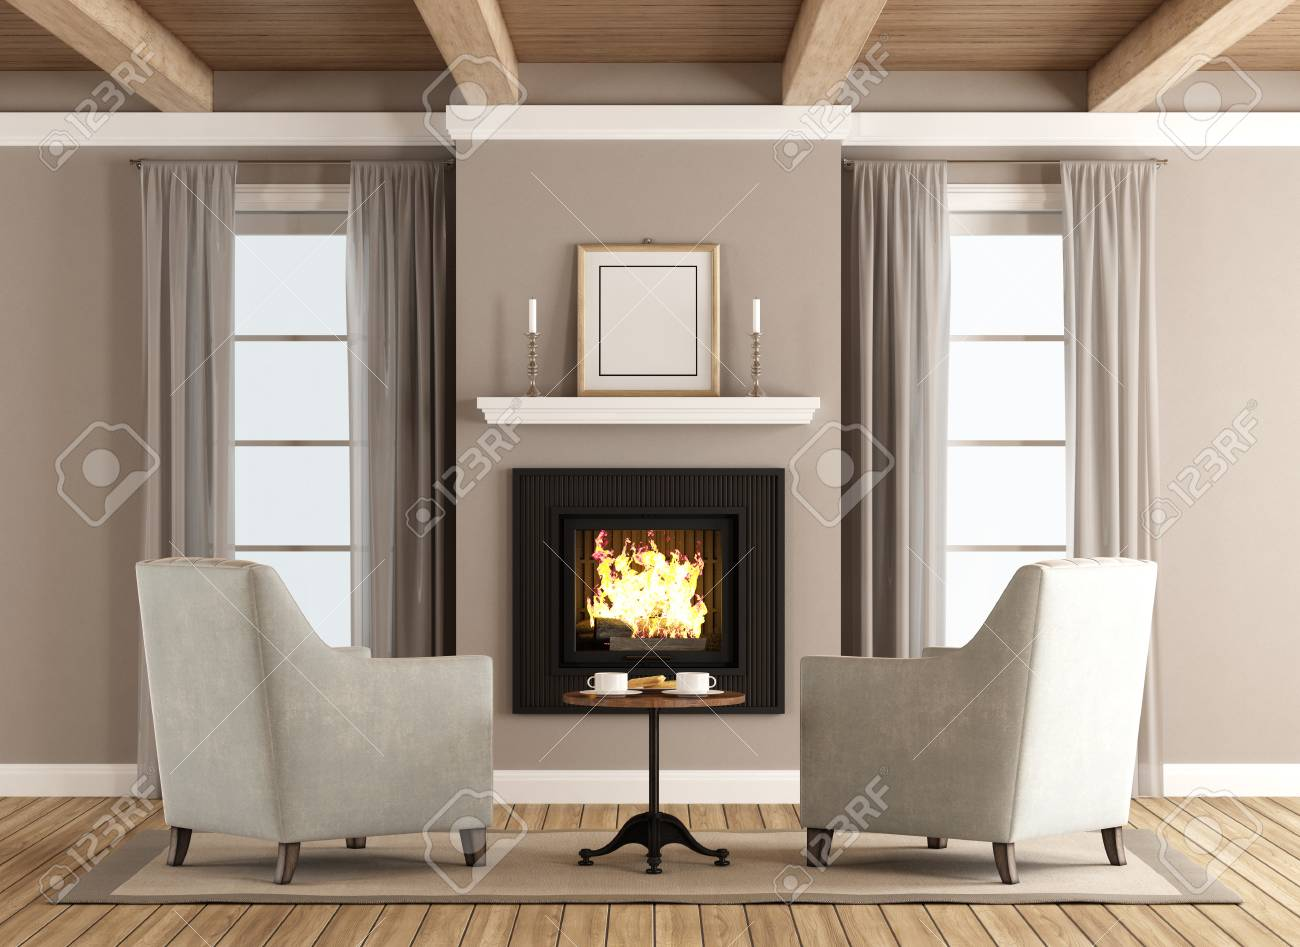 Classic Living Room With Two Armchairs In Front Of The Fireplace   3d  Rendering Stock Photo